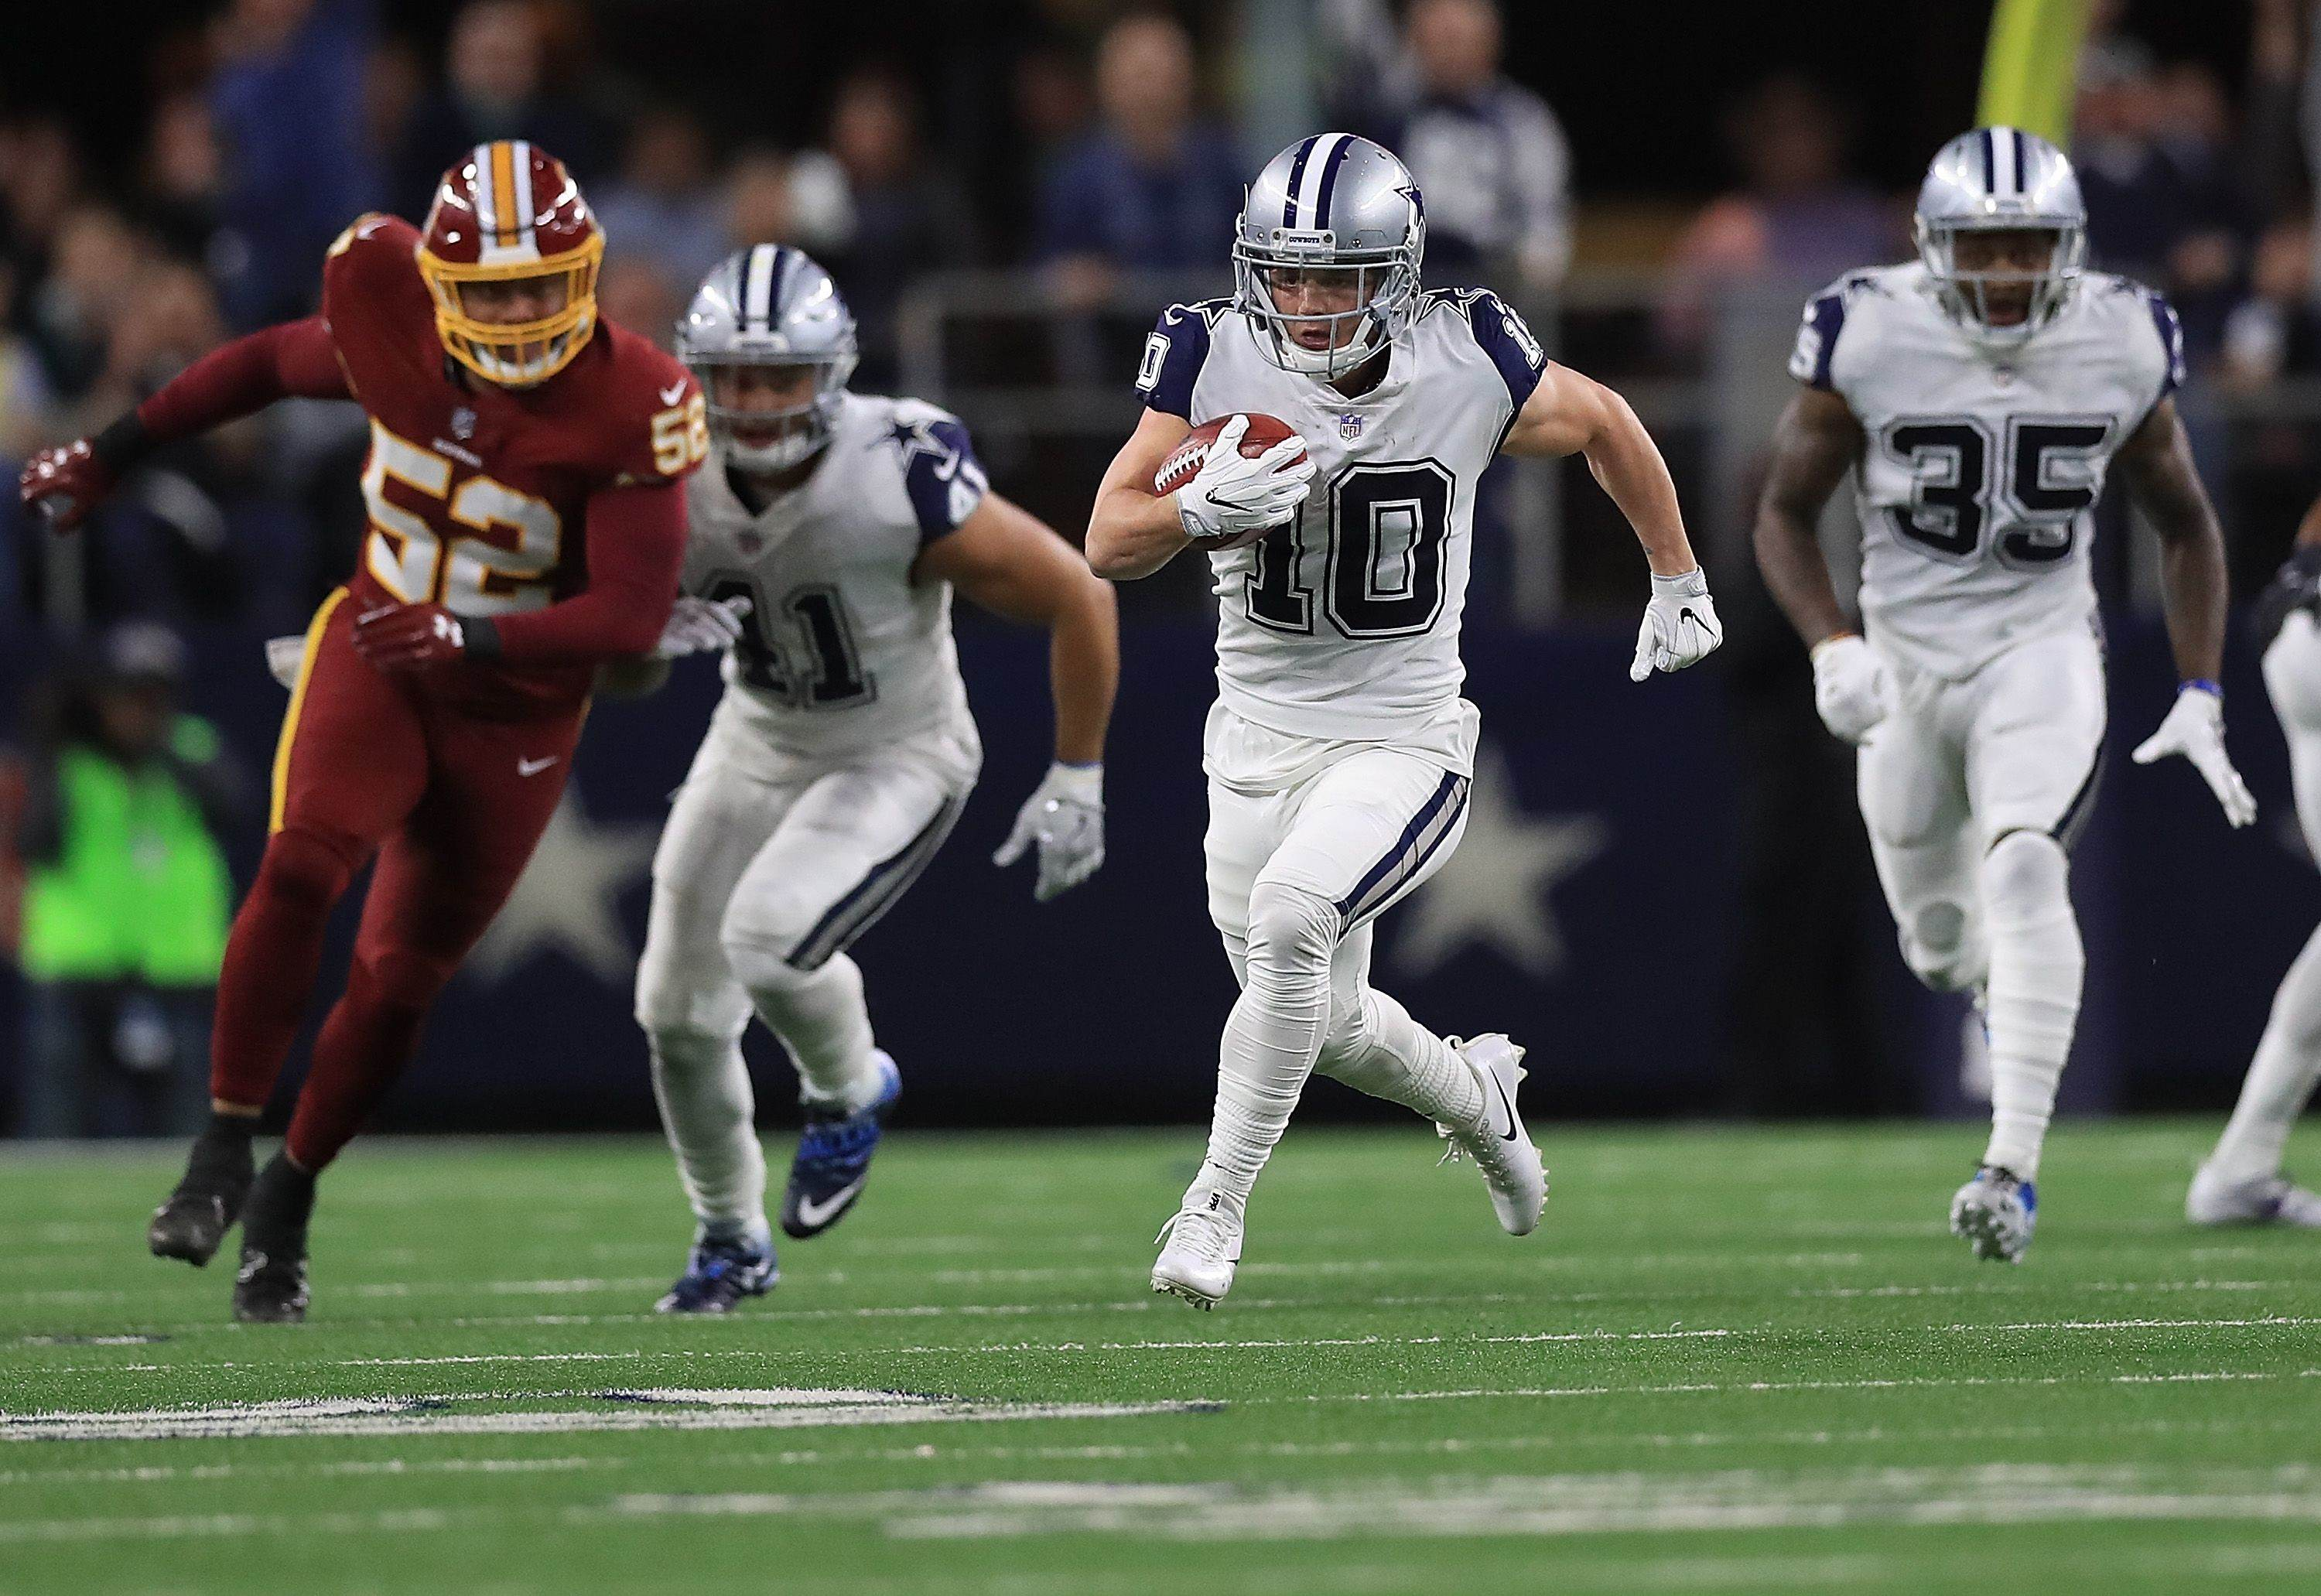 Could The Dallas Cowboys Feature a New-Look Offense in 2018?